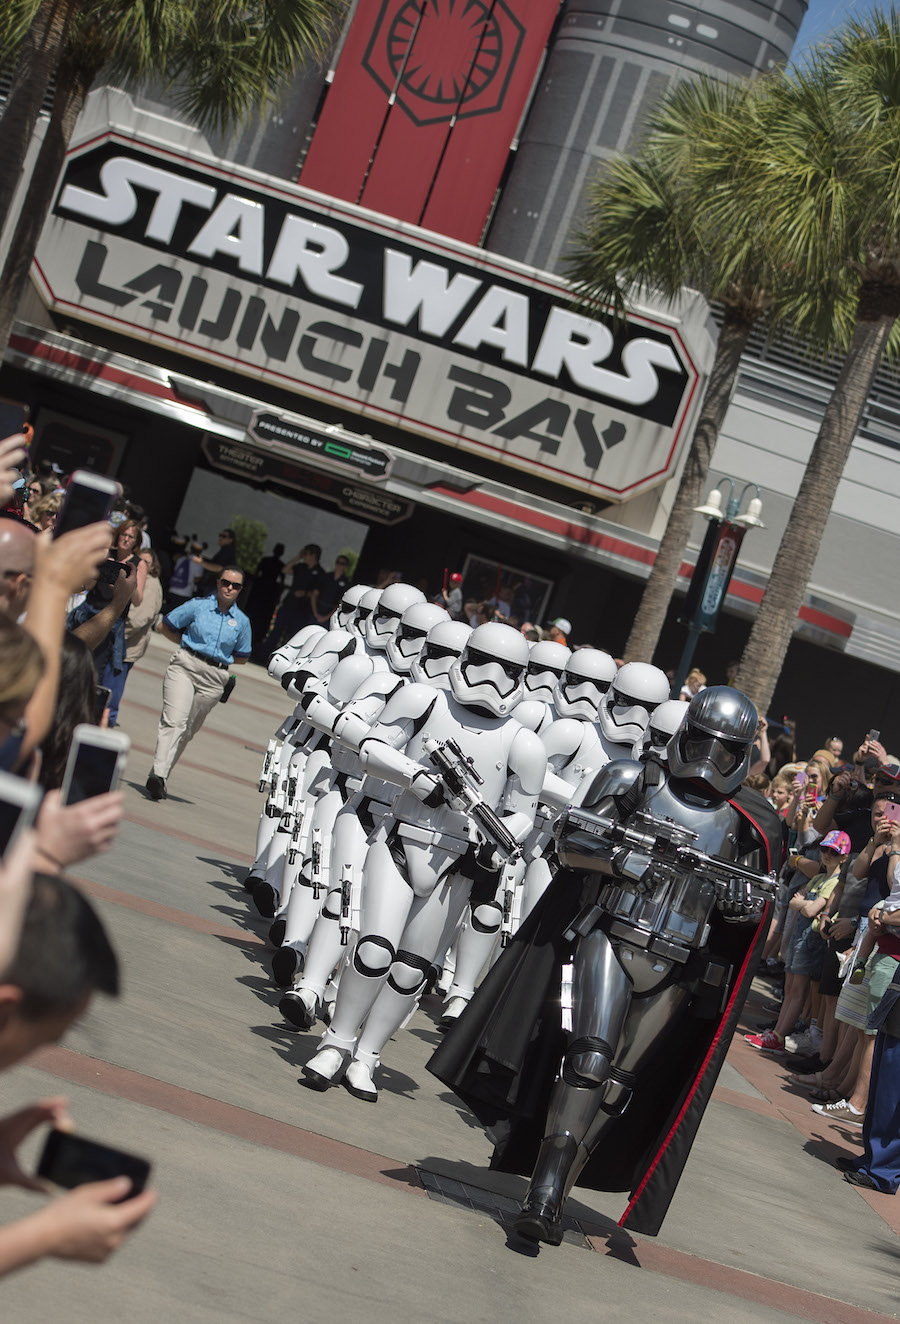 The March of the First Order Stormtrooper procession led by Captain Phasma from the Star Wars Launch Bay